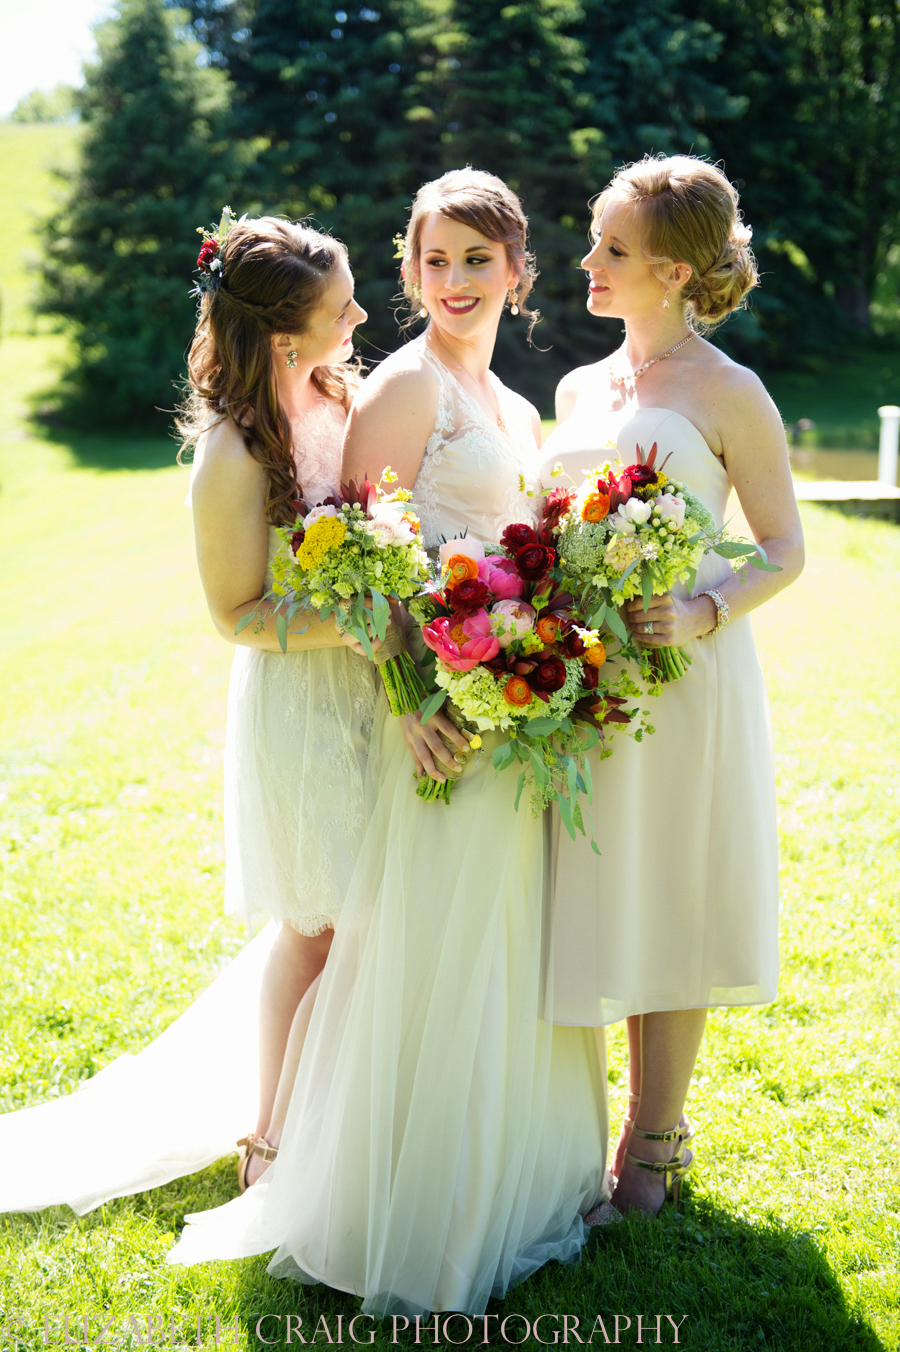 Shady Elms Farm Weddings and Receptions Elizabeth Craig Photography-0064